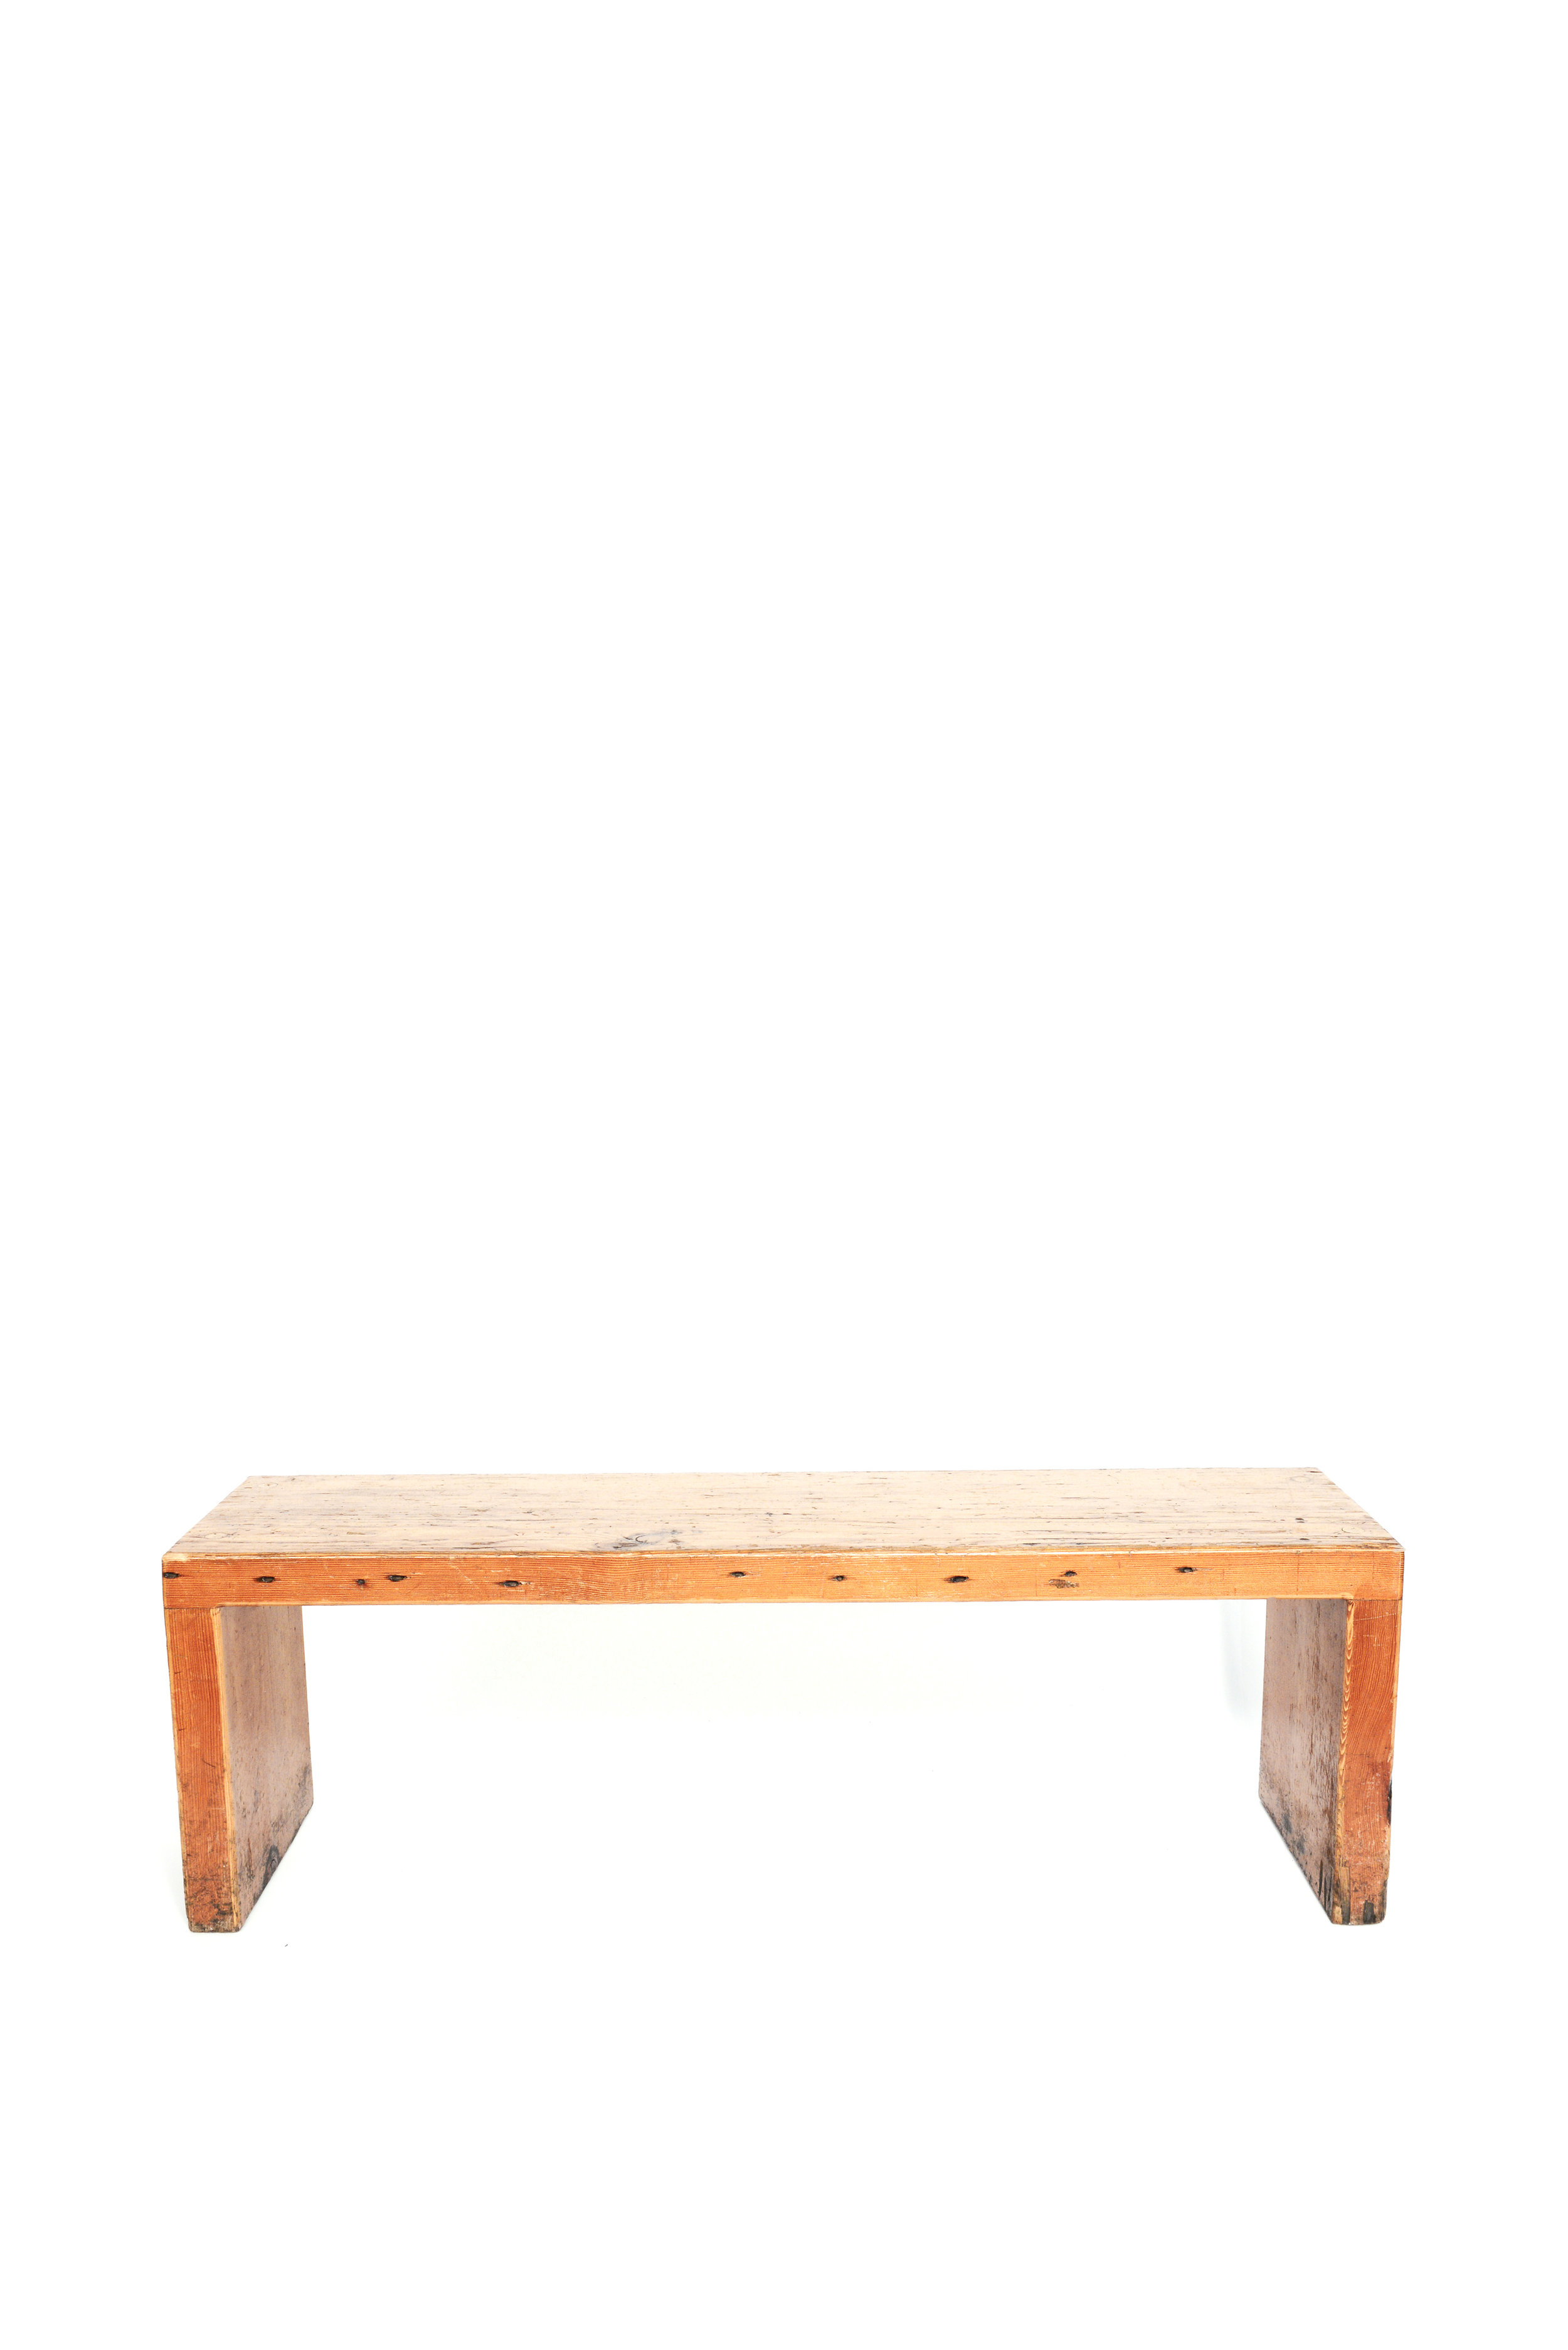 Wood Benches qty. 12